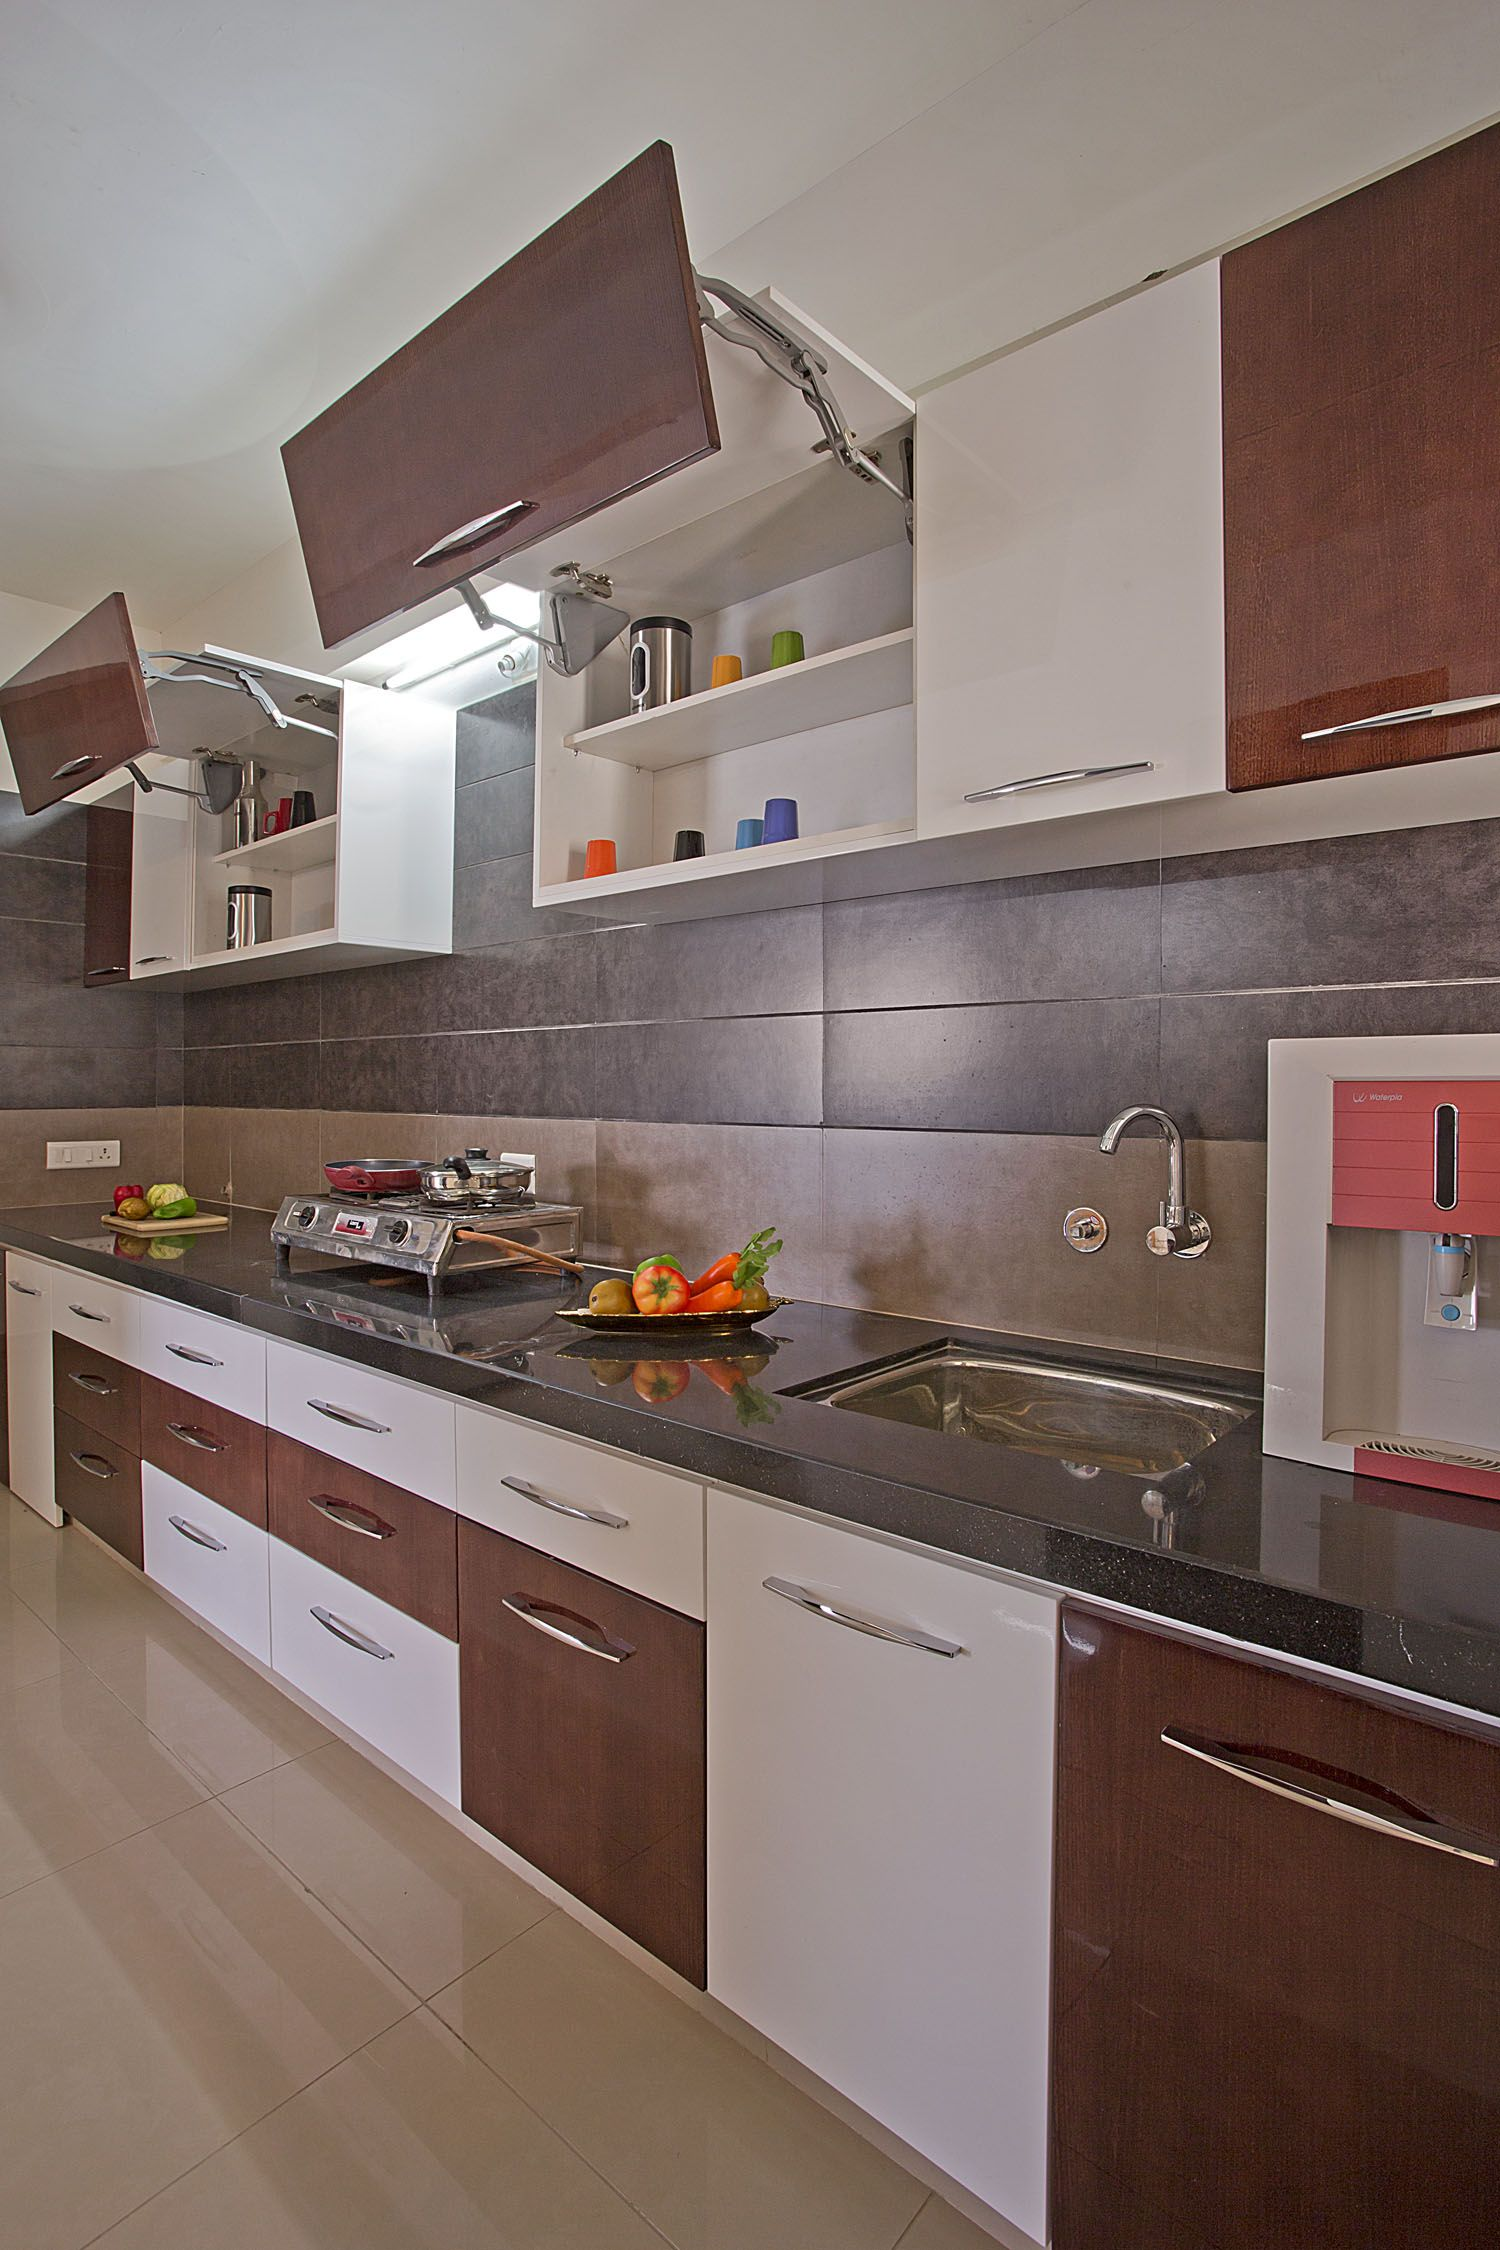 what is an l shaped kitchen kitchen modular kitchen cabinet layout kitchen room design on a kitchen design id=80416